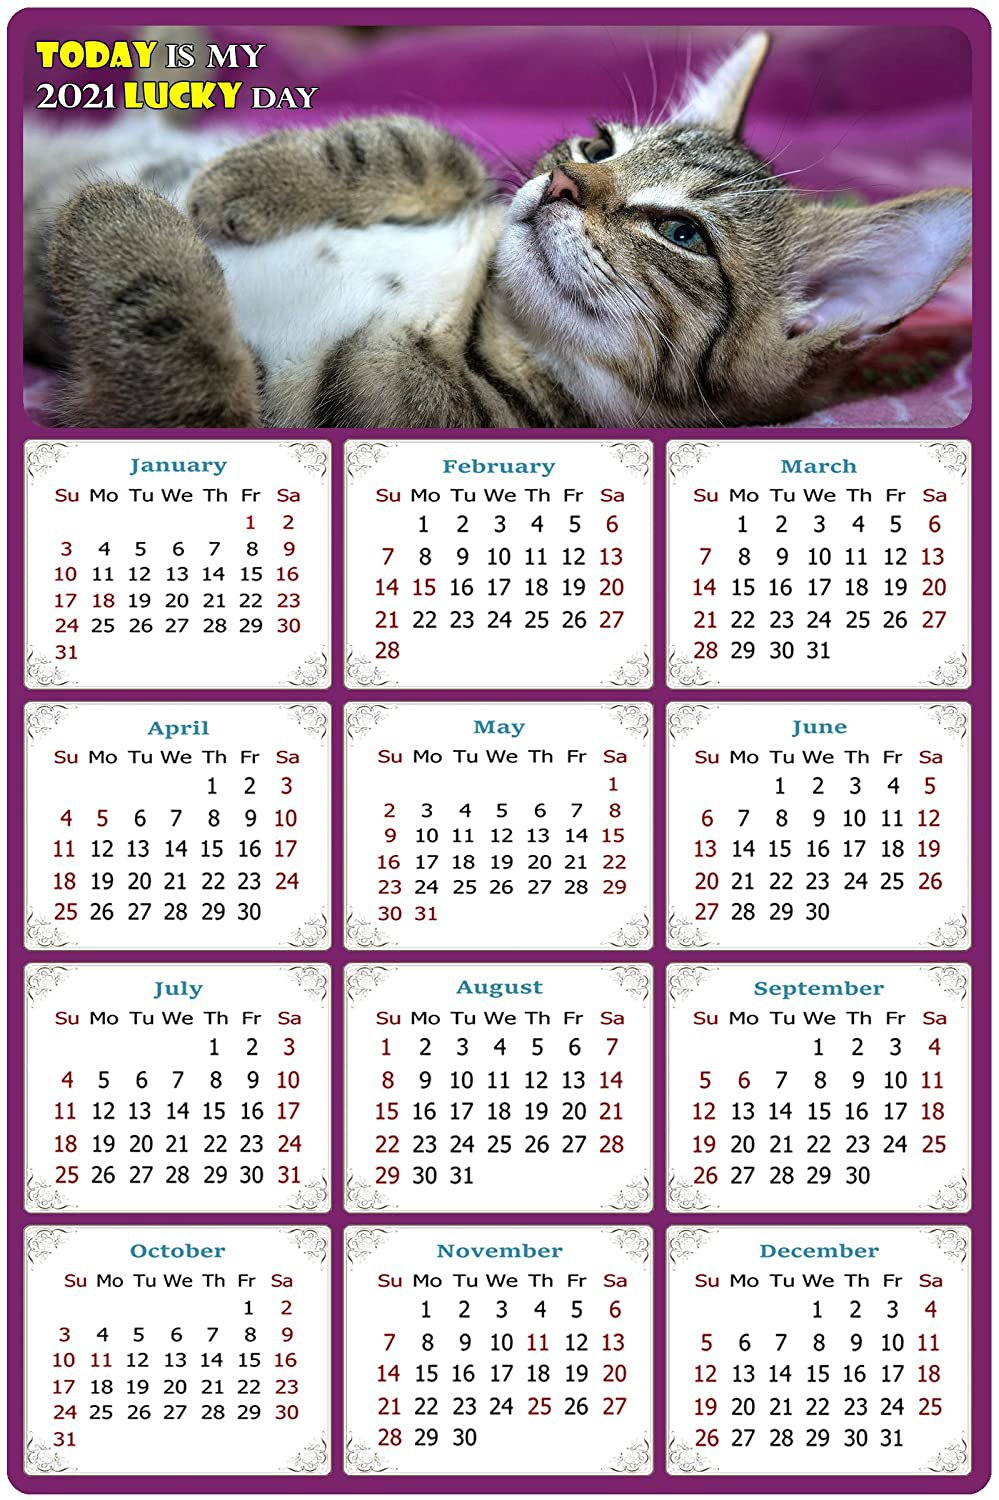 2021 Magnetic Calendar - Calendar Magnets - Today is My Lucky Day - Cat Themed 08 (7 x 10.5)